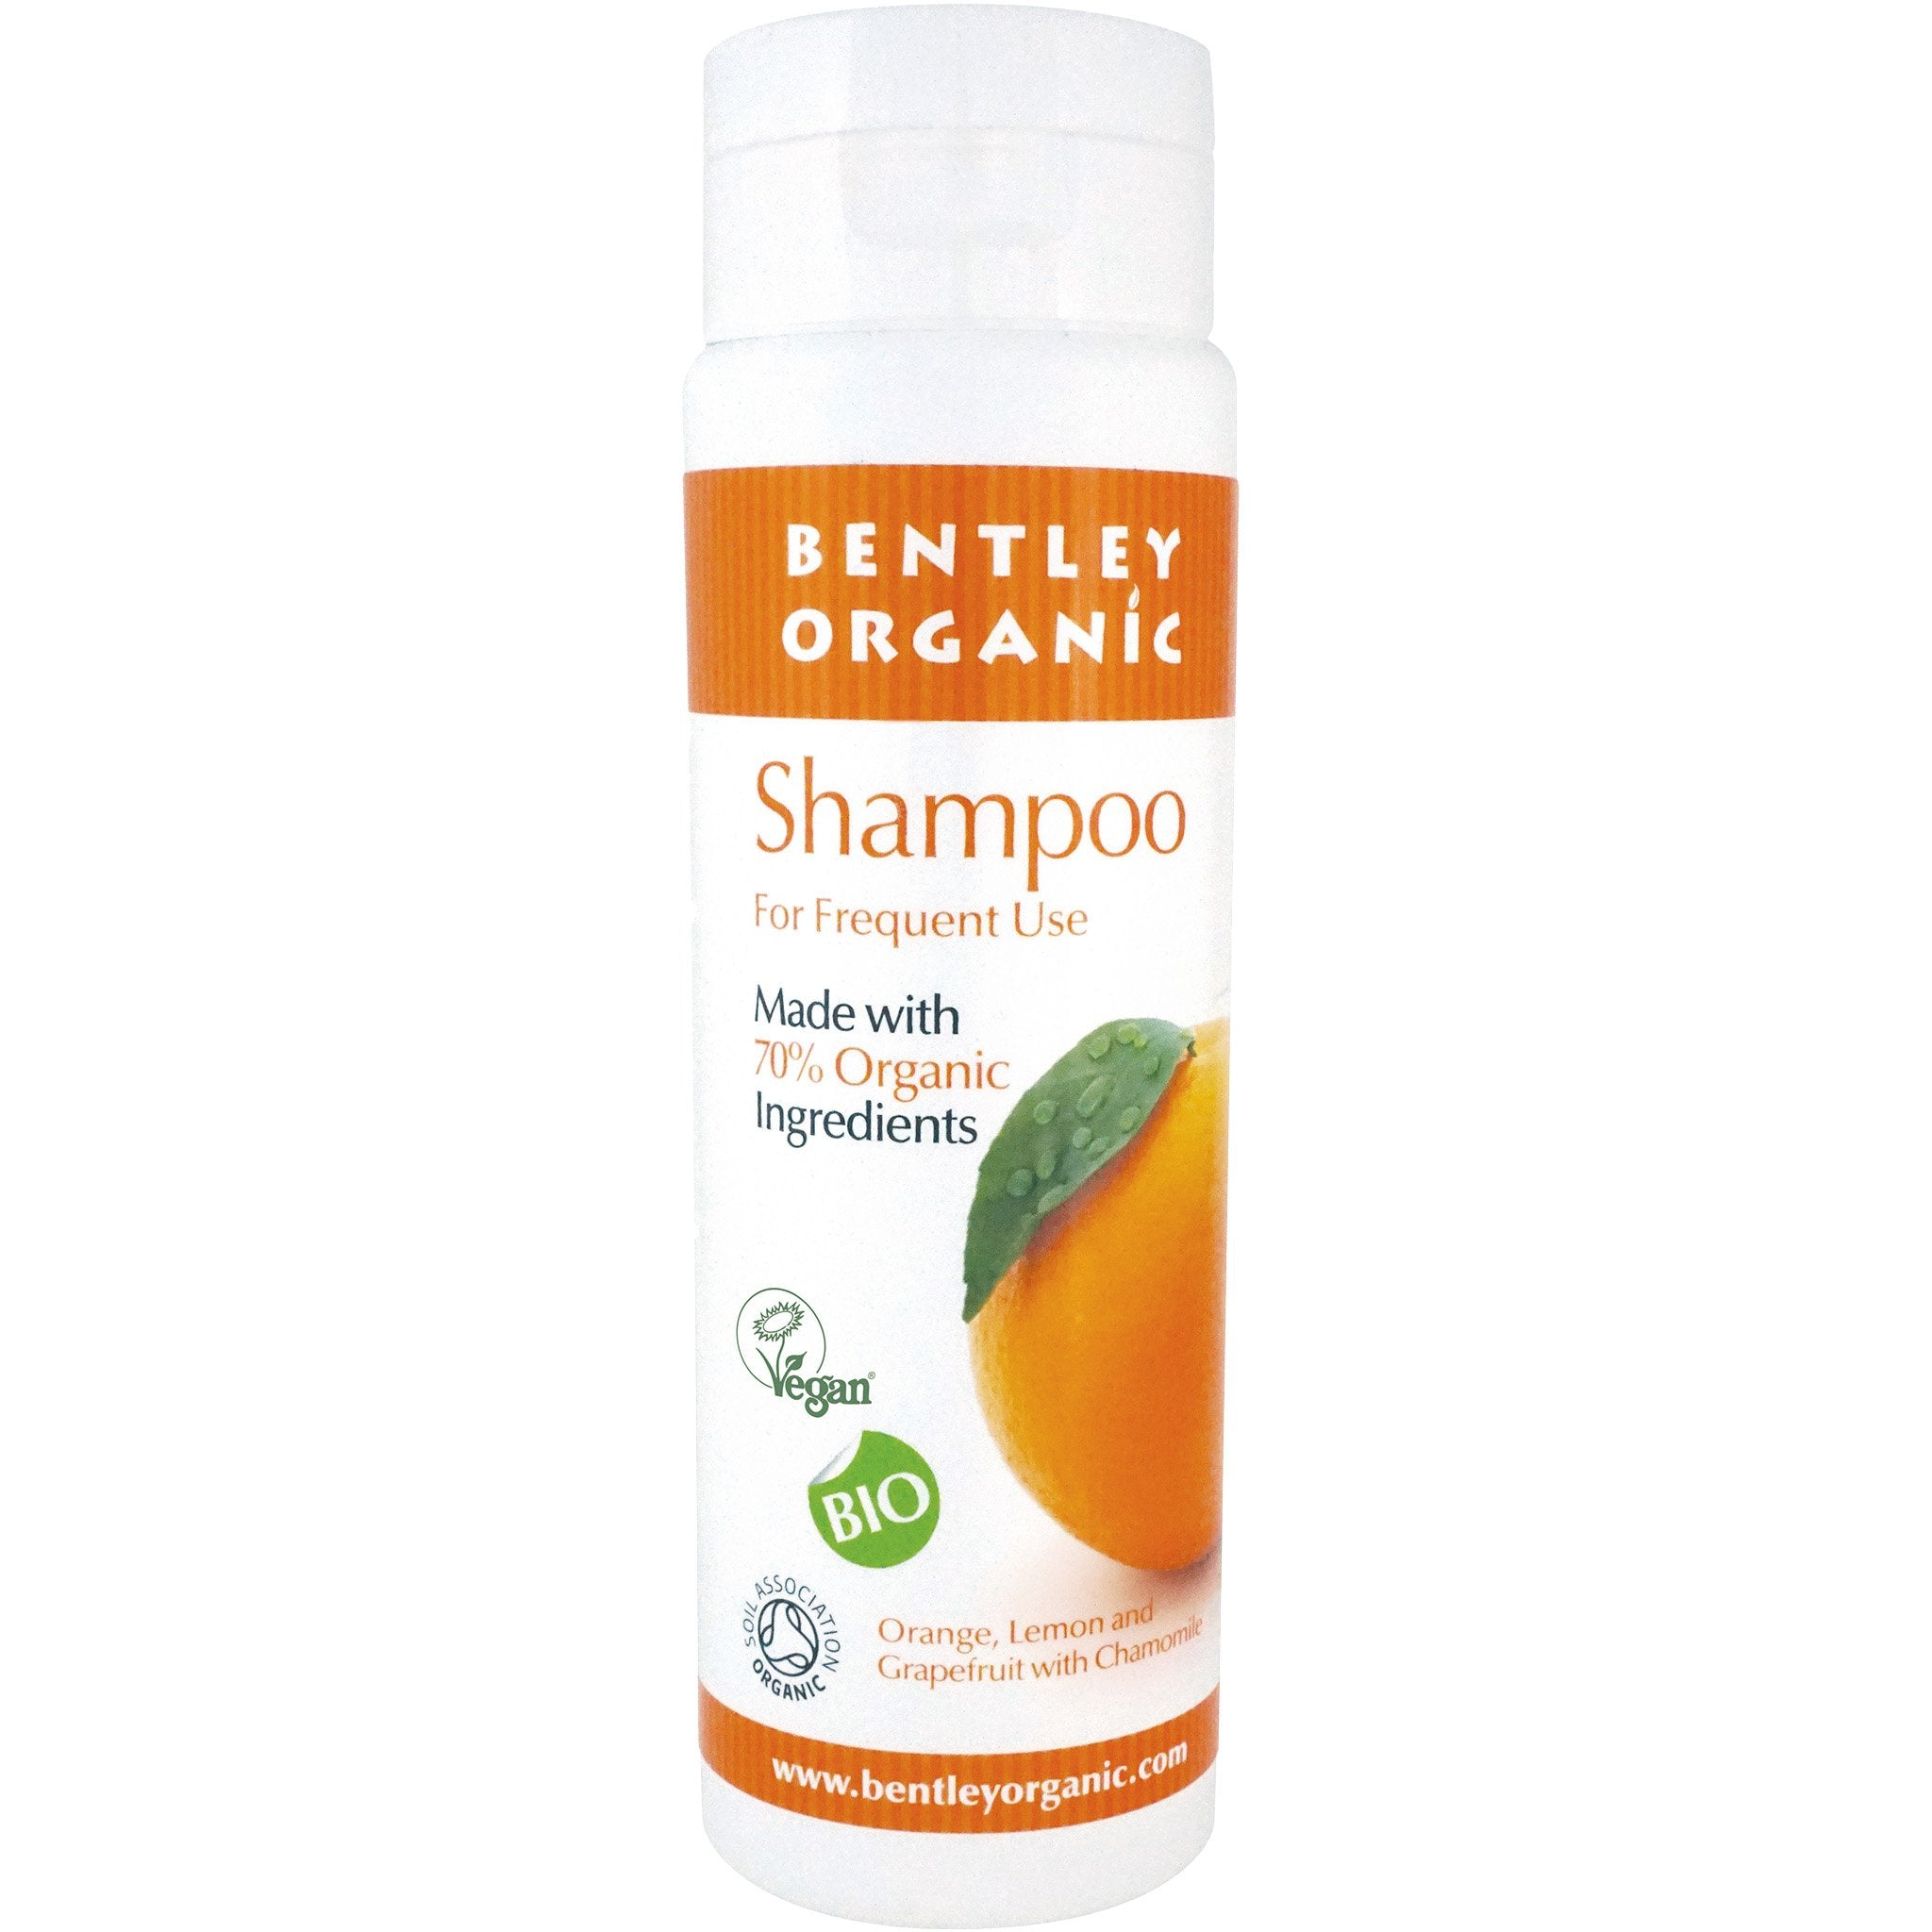 Shampoo with Orange, Grapefruit, Lemon - For Frequent Use